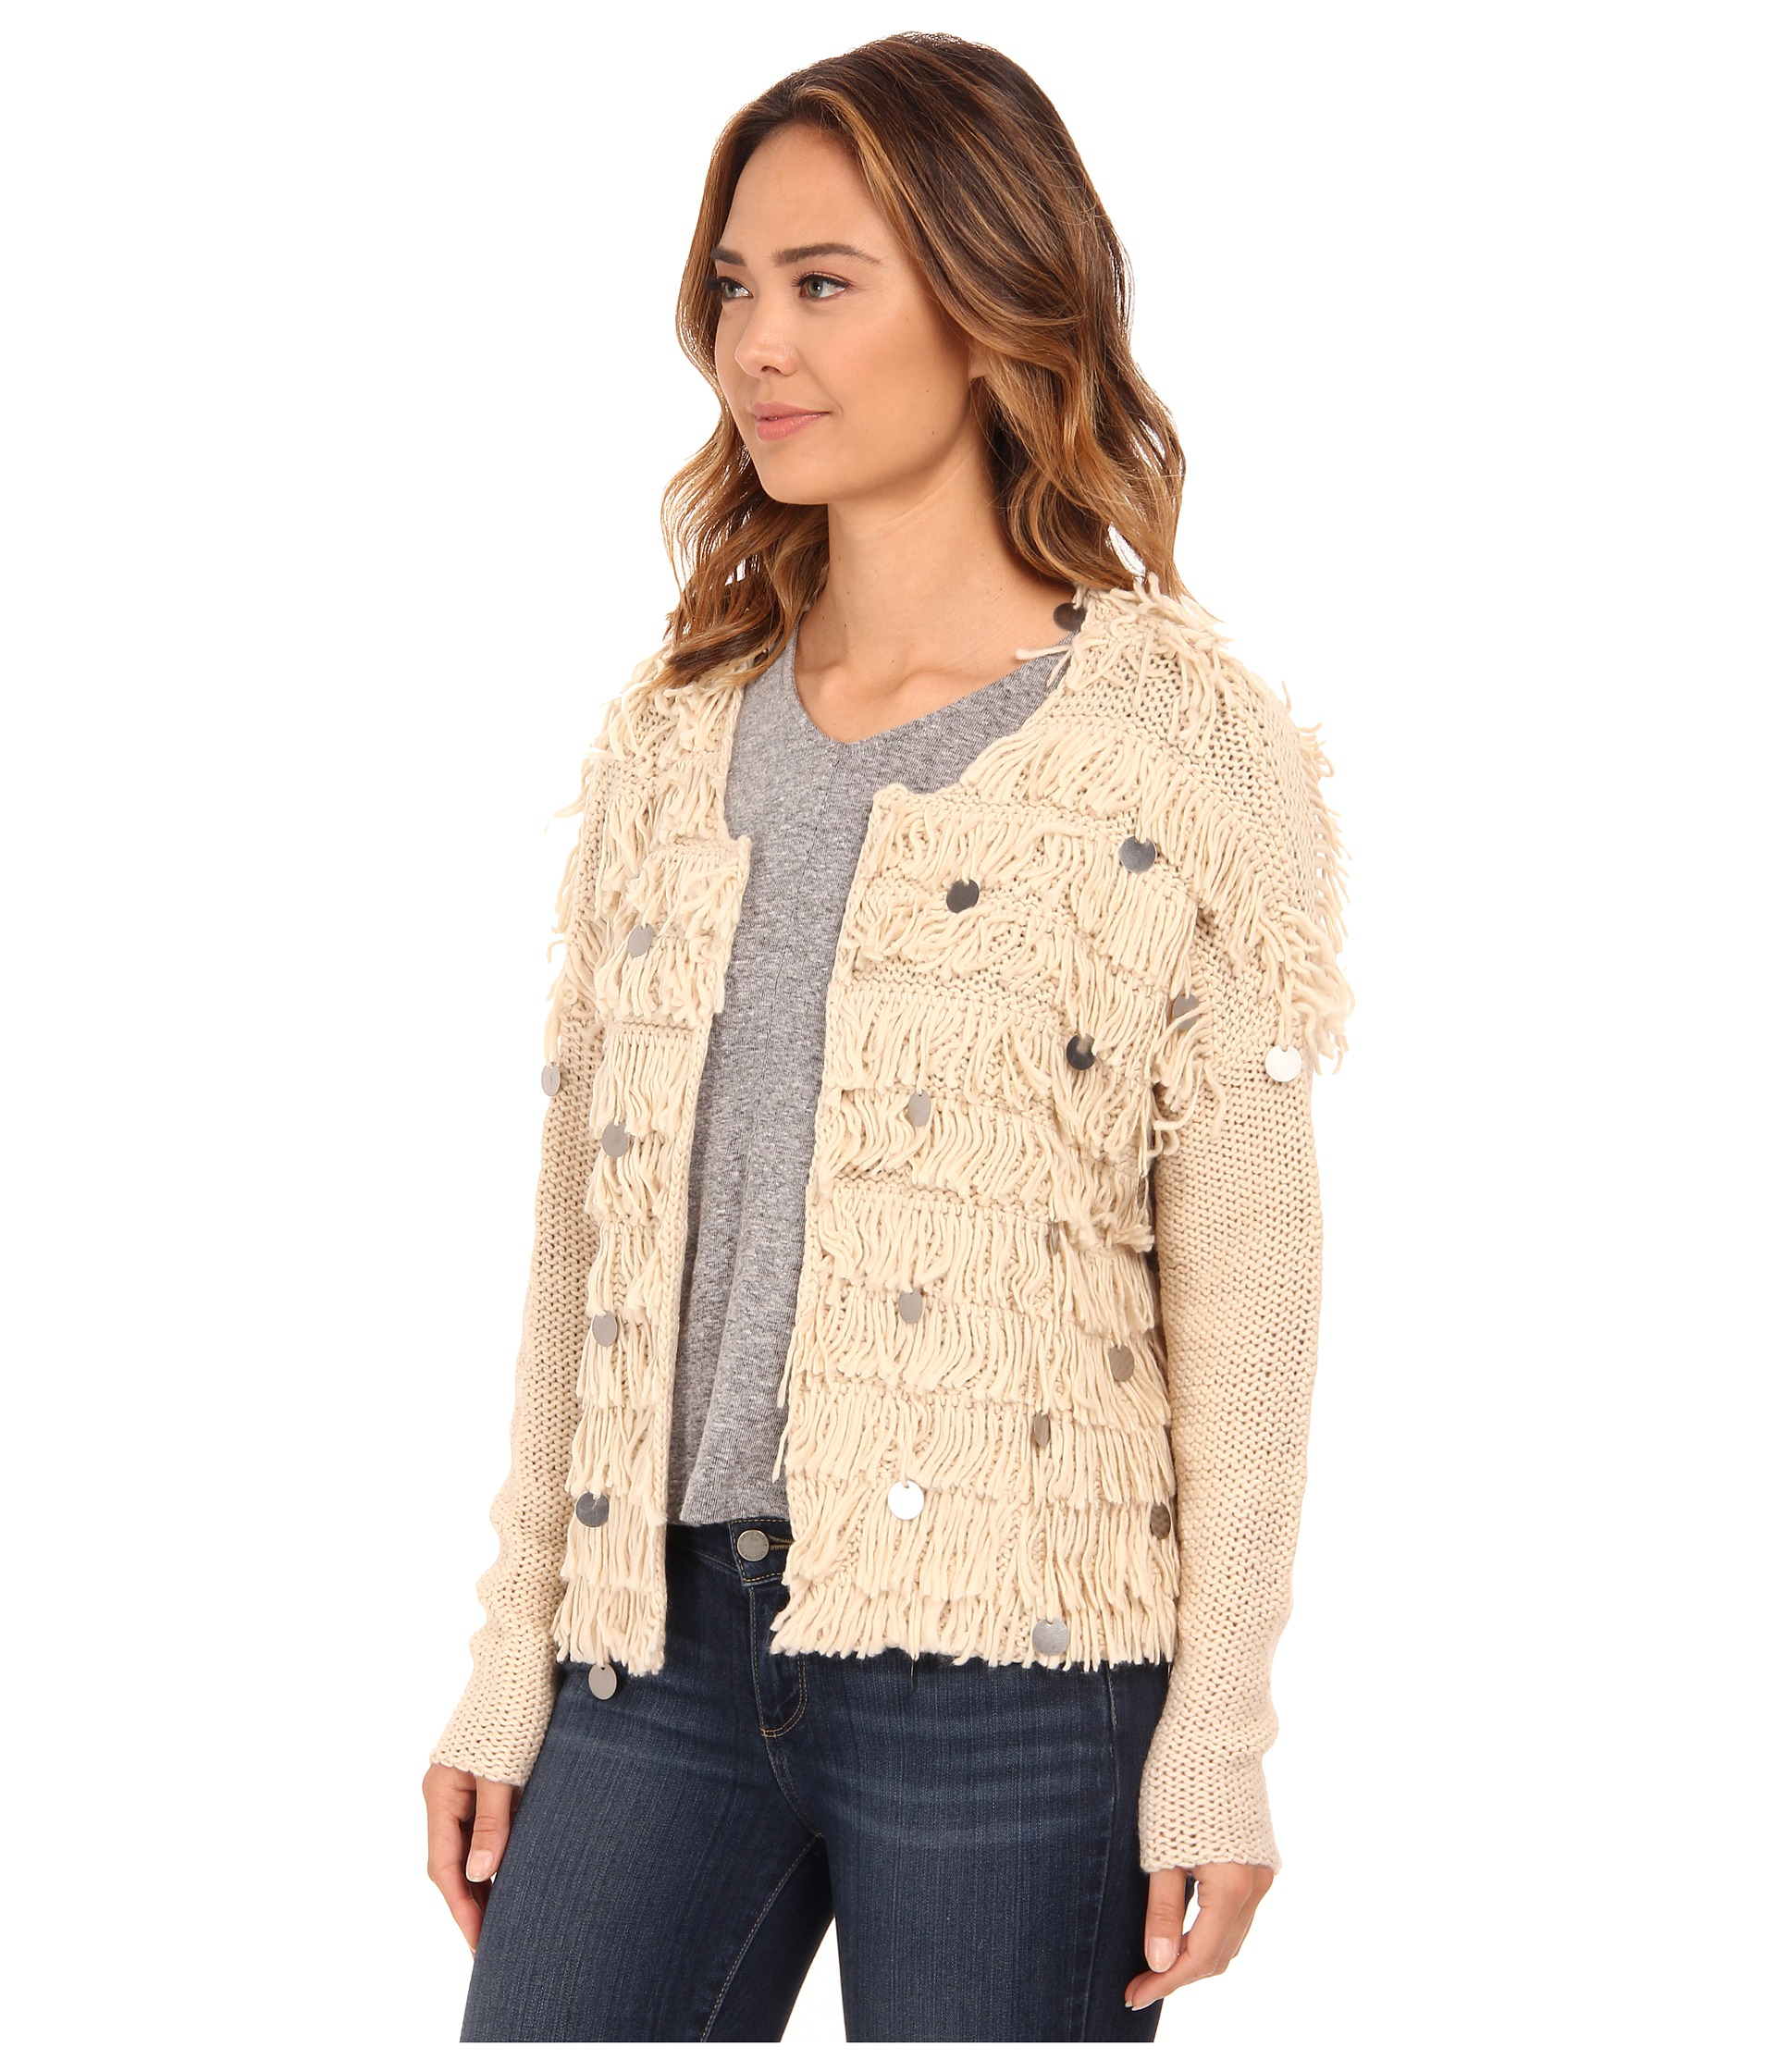 f5eb963c04 Lyst - Amuse Society Sunday Sweater in Natural